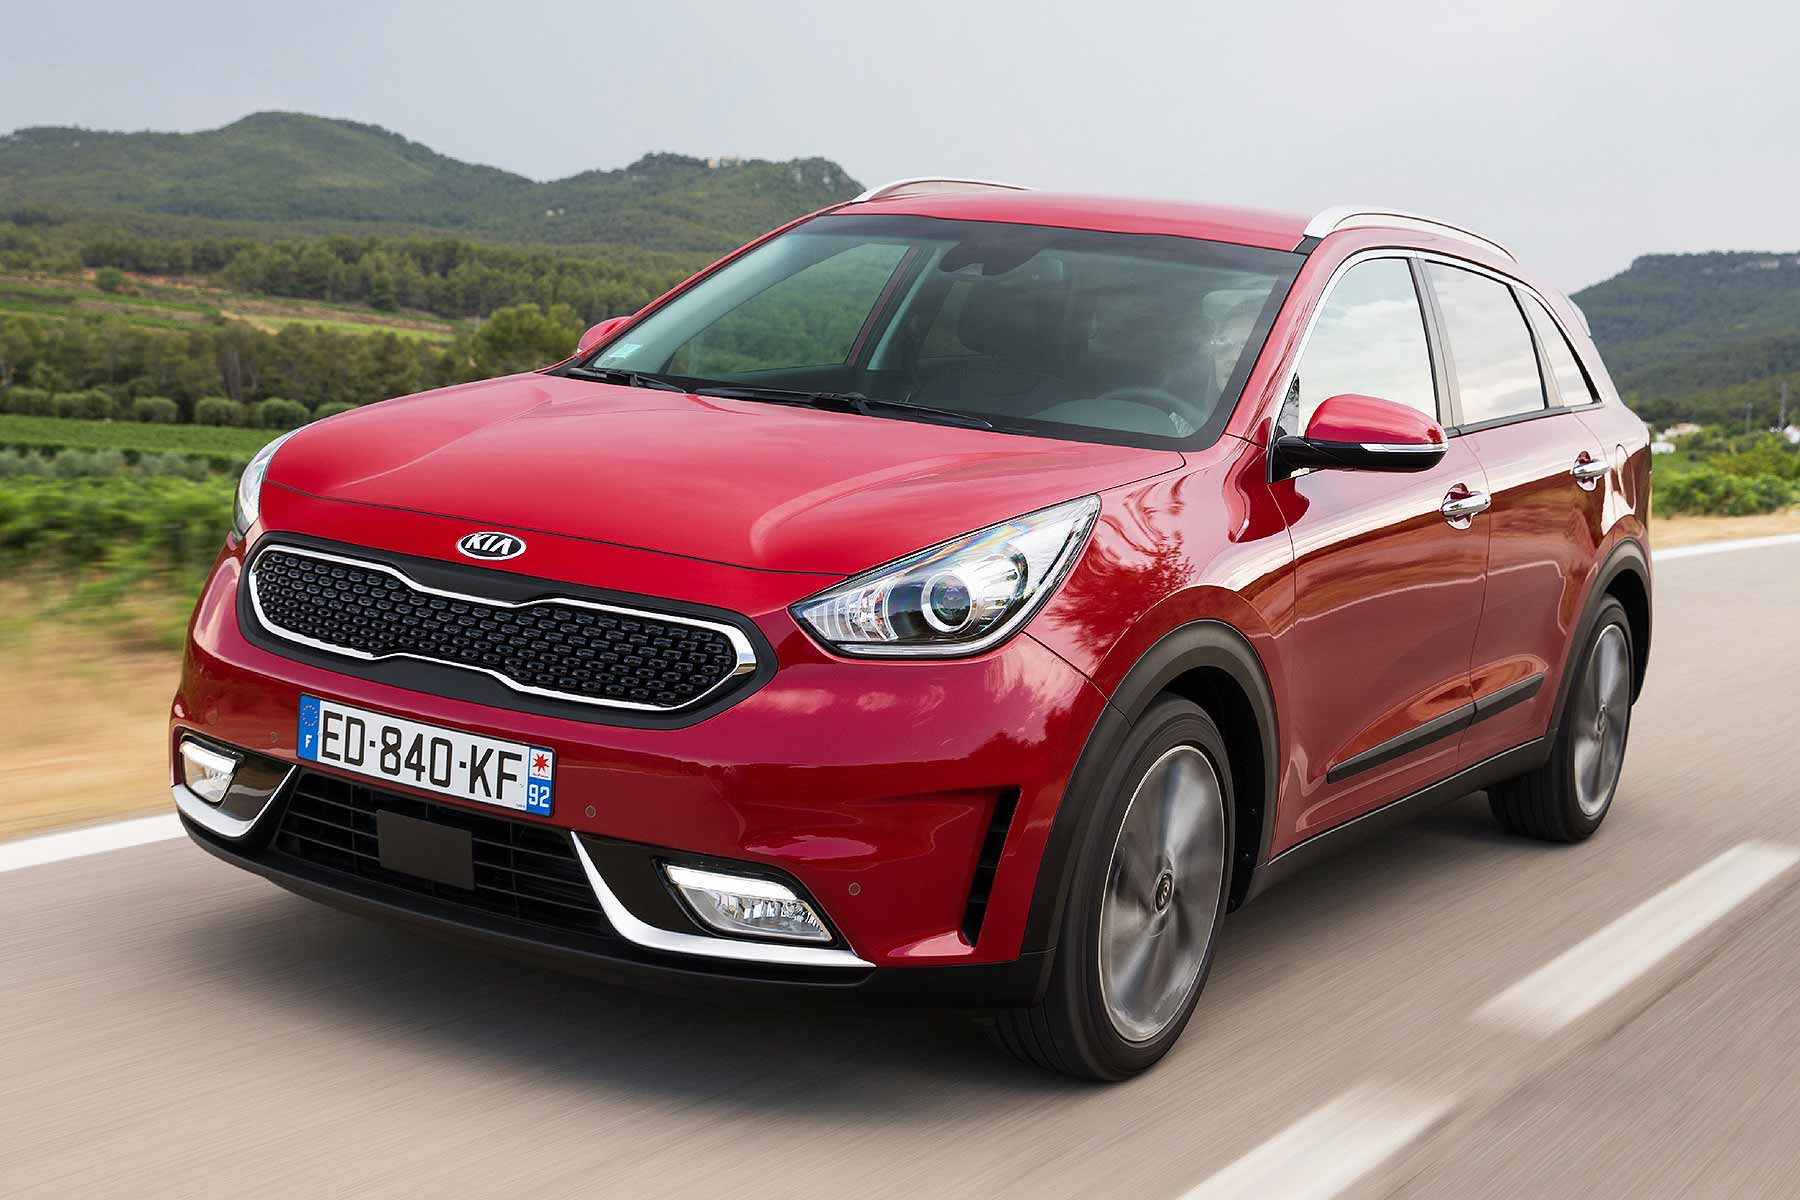 kia niro prices revealed 21 295 for new hybrid crossover motoring research. Black Bedroom Furniture Sets. Home Design Ideas